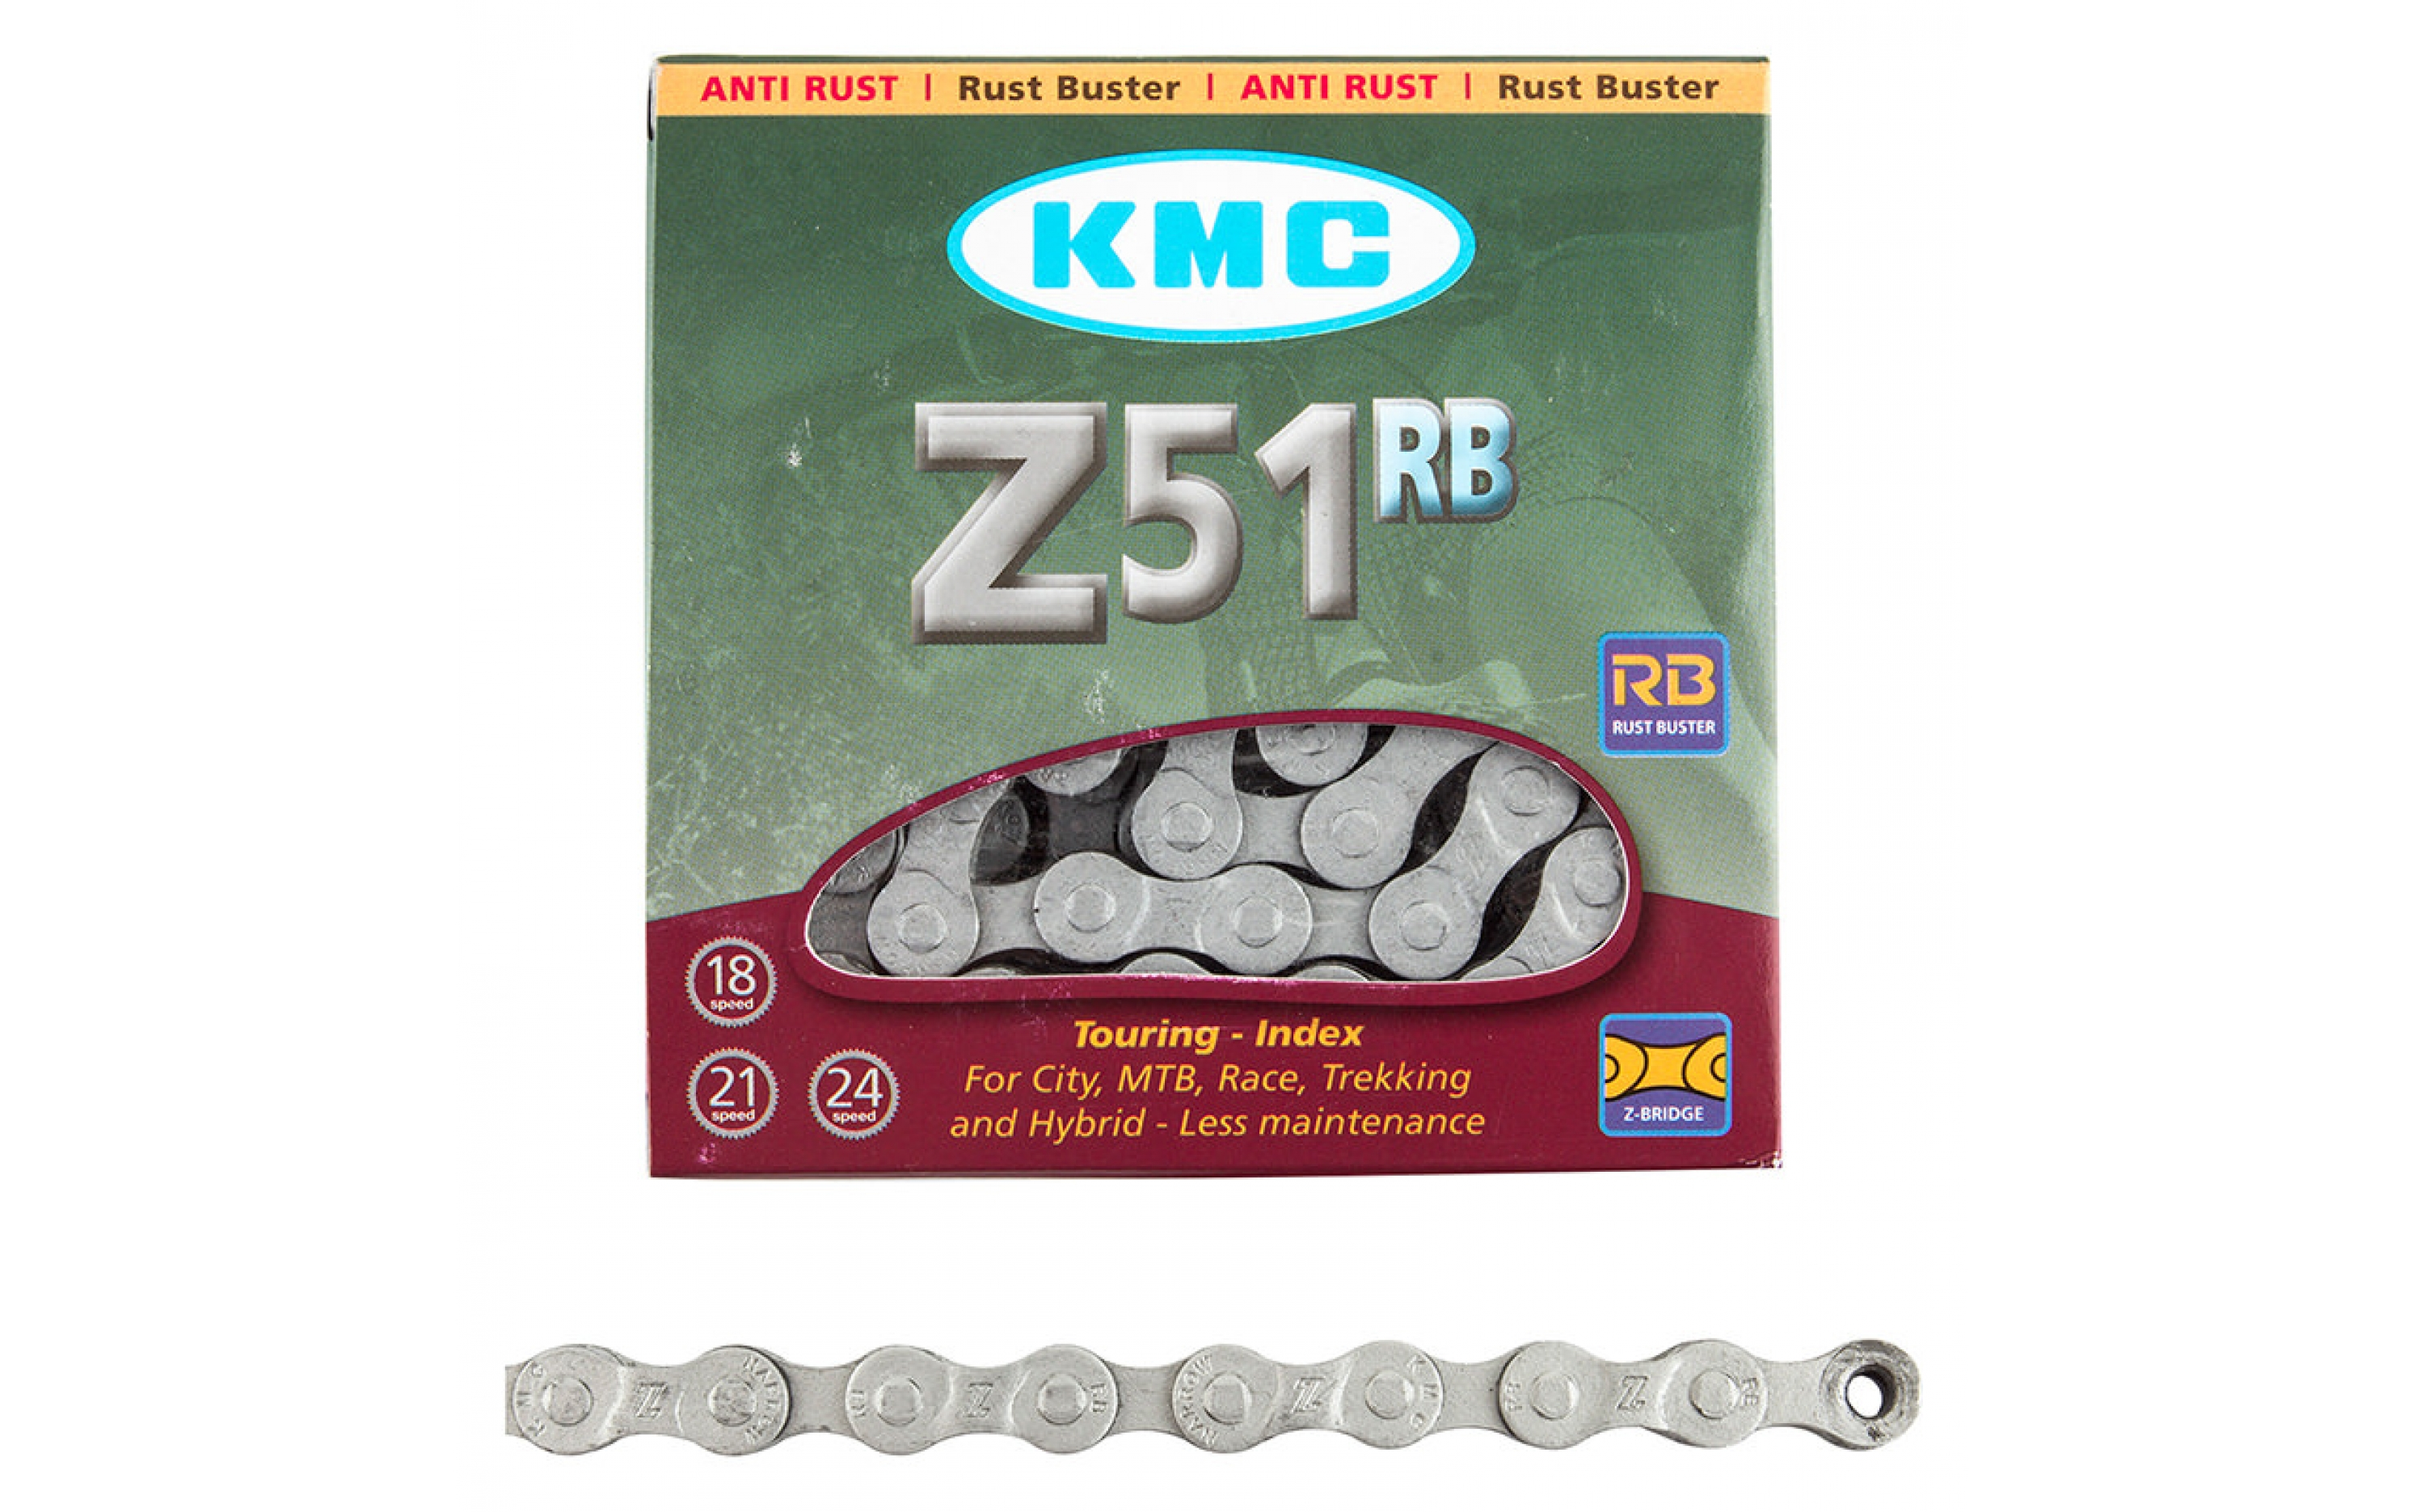 """Chains KMC 7sp Z51RB """"rust buster"""" 1/2x3/32x116L, KMC chains., Chains."""